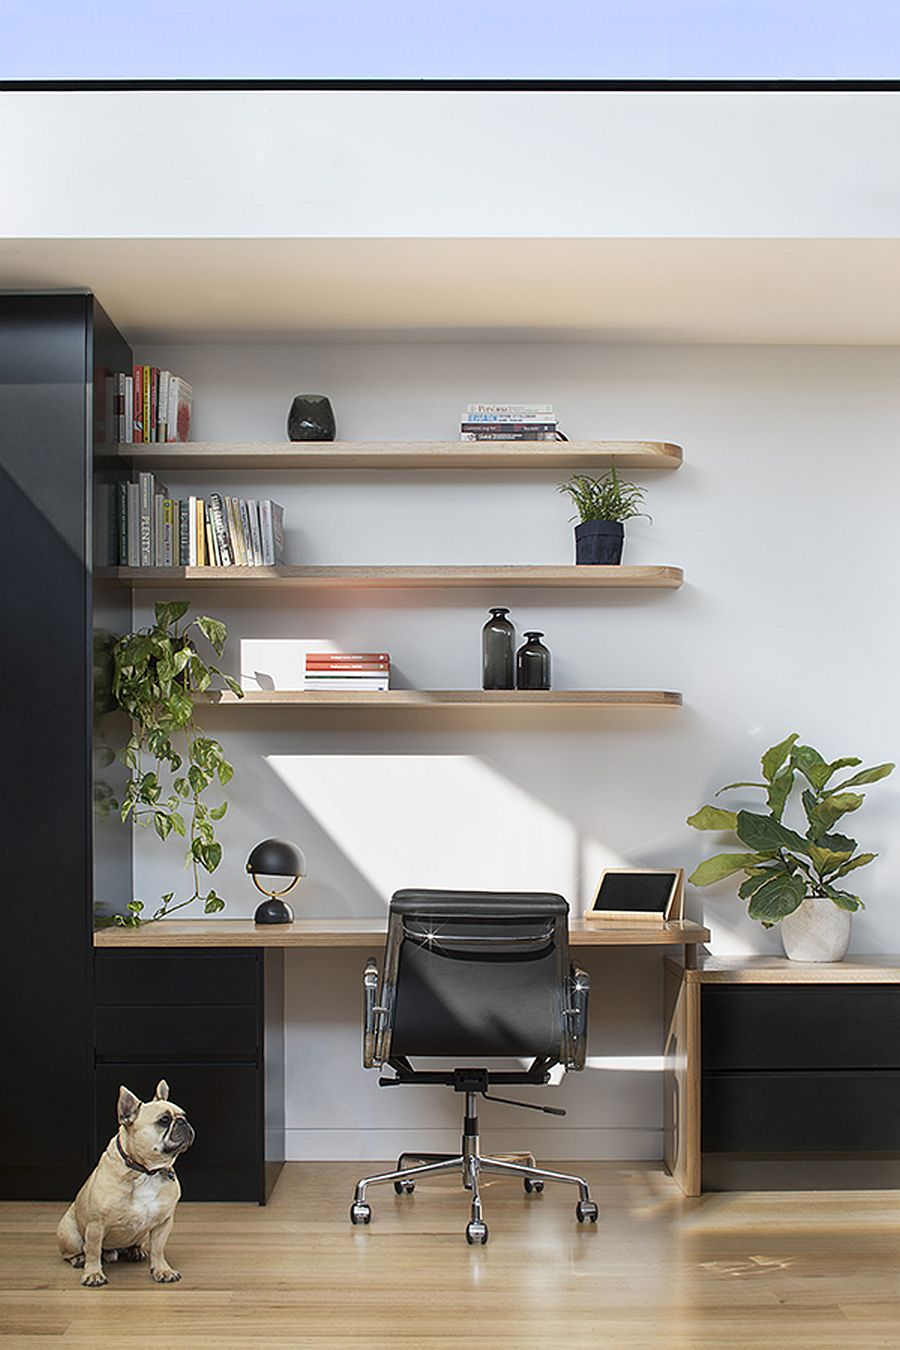 Small home workspace with sleek floating shelves above